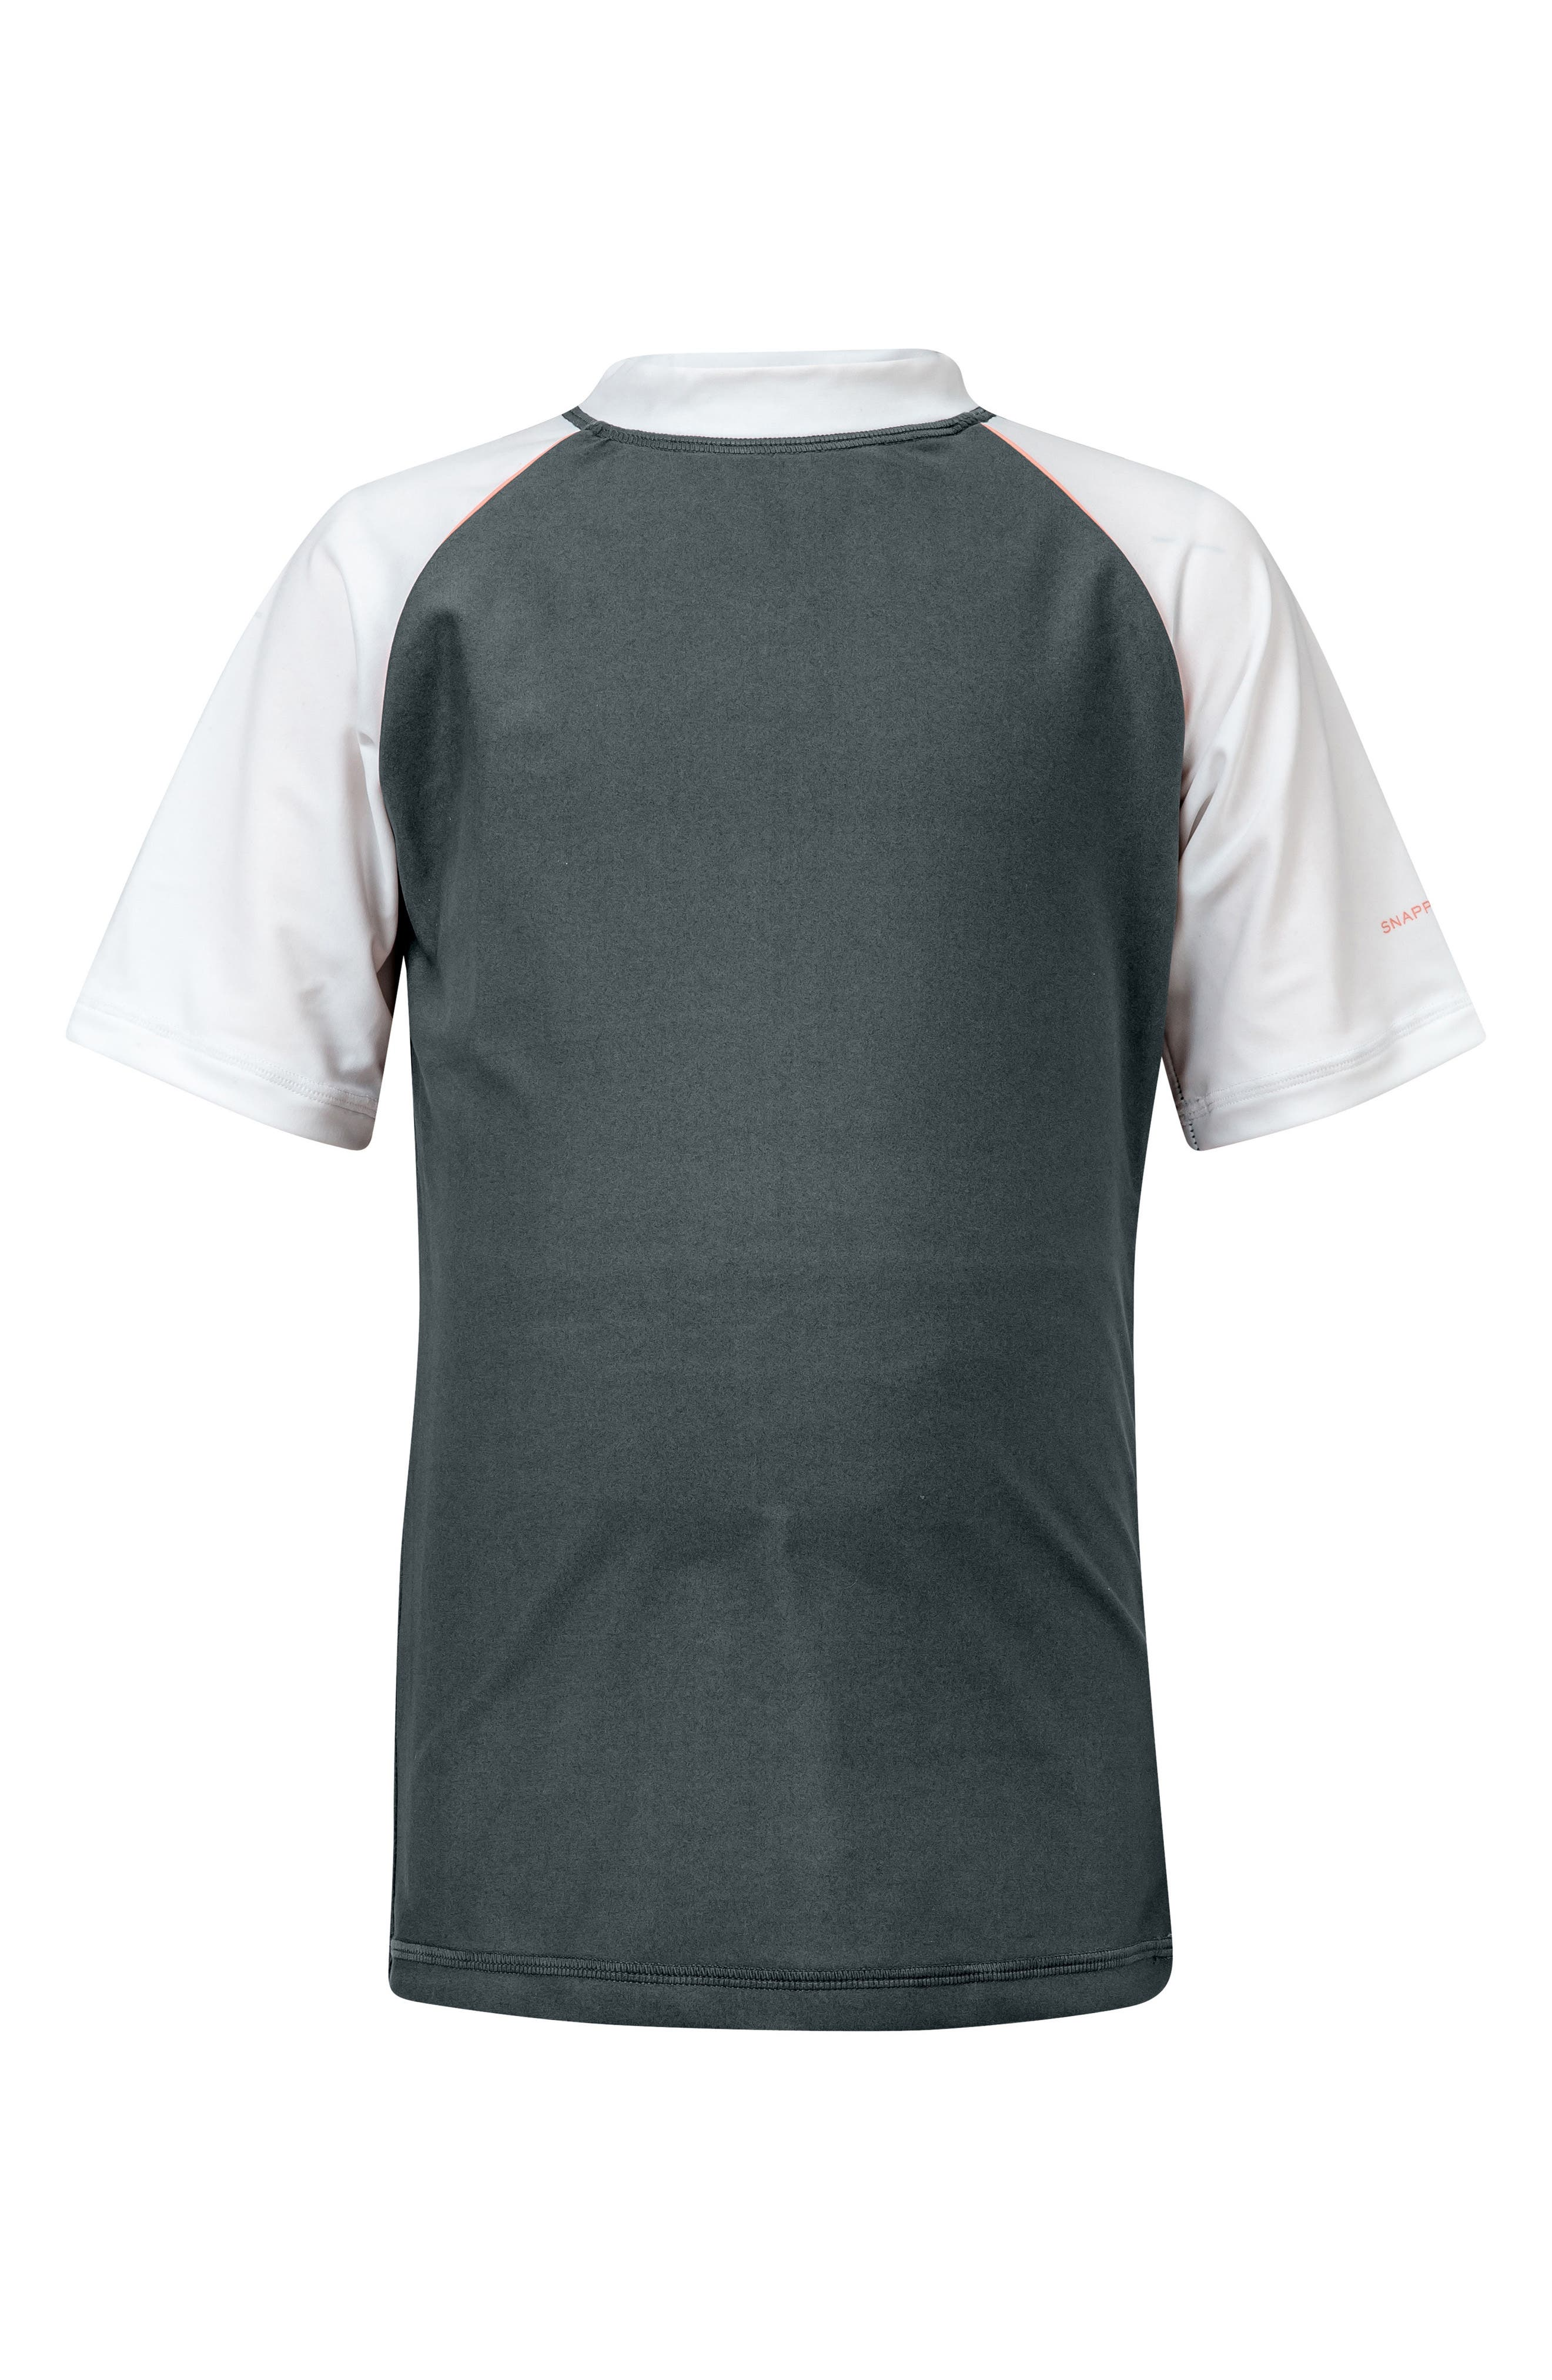 Raglan Short Sleeve Rashguard,                         Main,                         color, Steel Grey